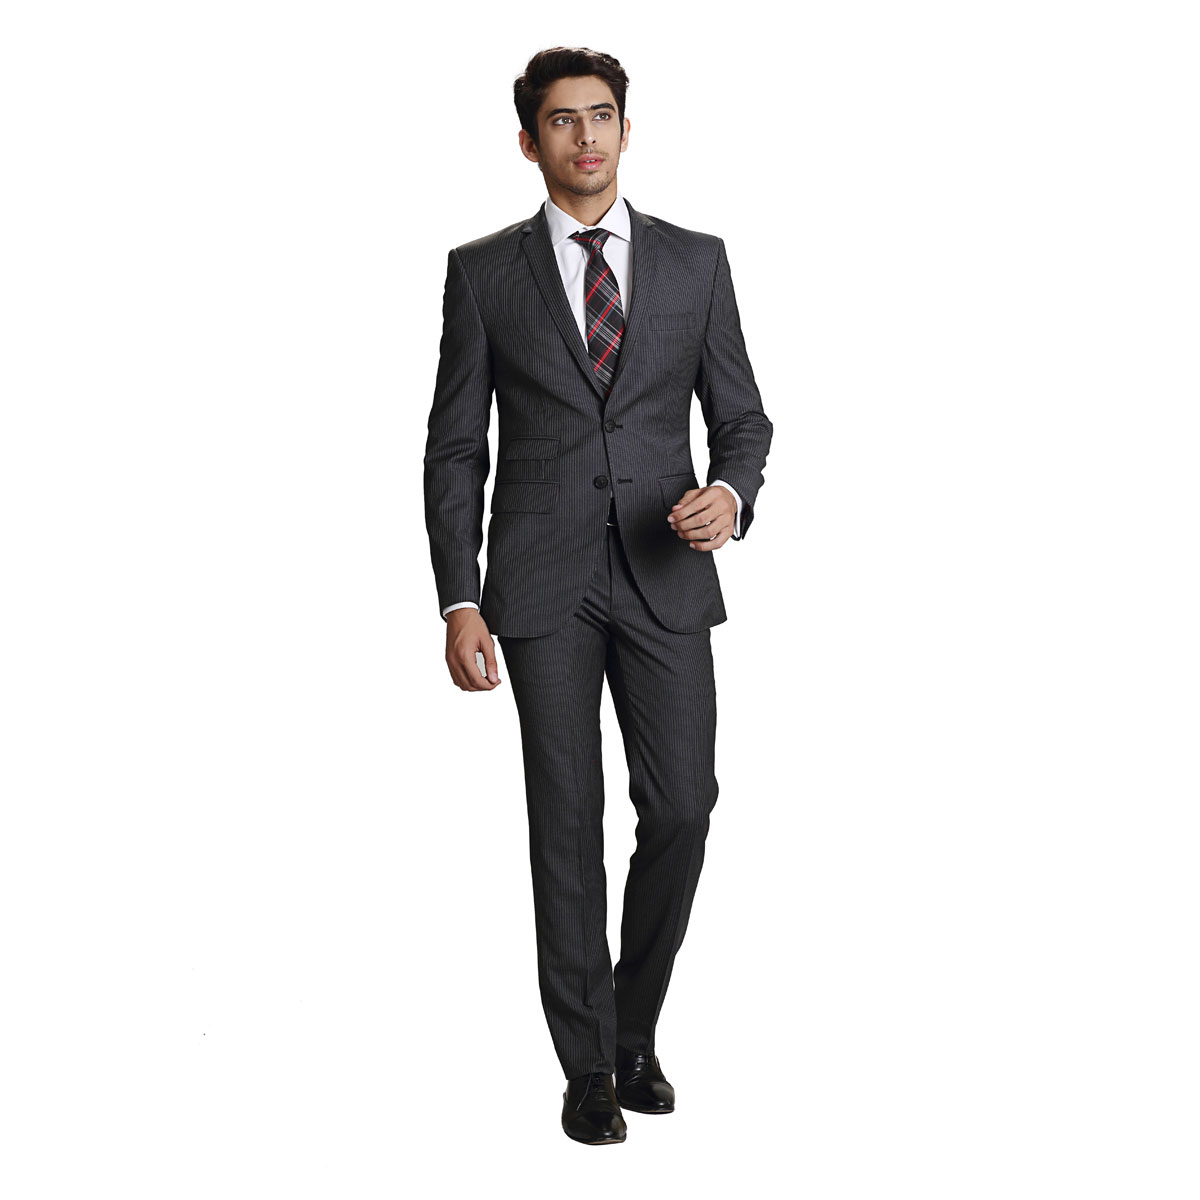 Take The Salute Grey Stripe Suit - Best Bespoke Suits. Premium